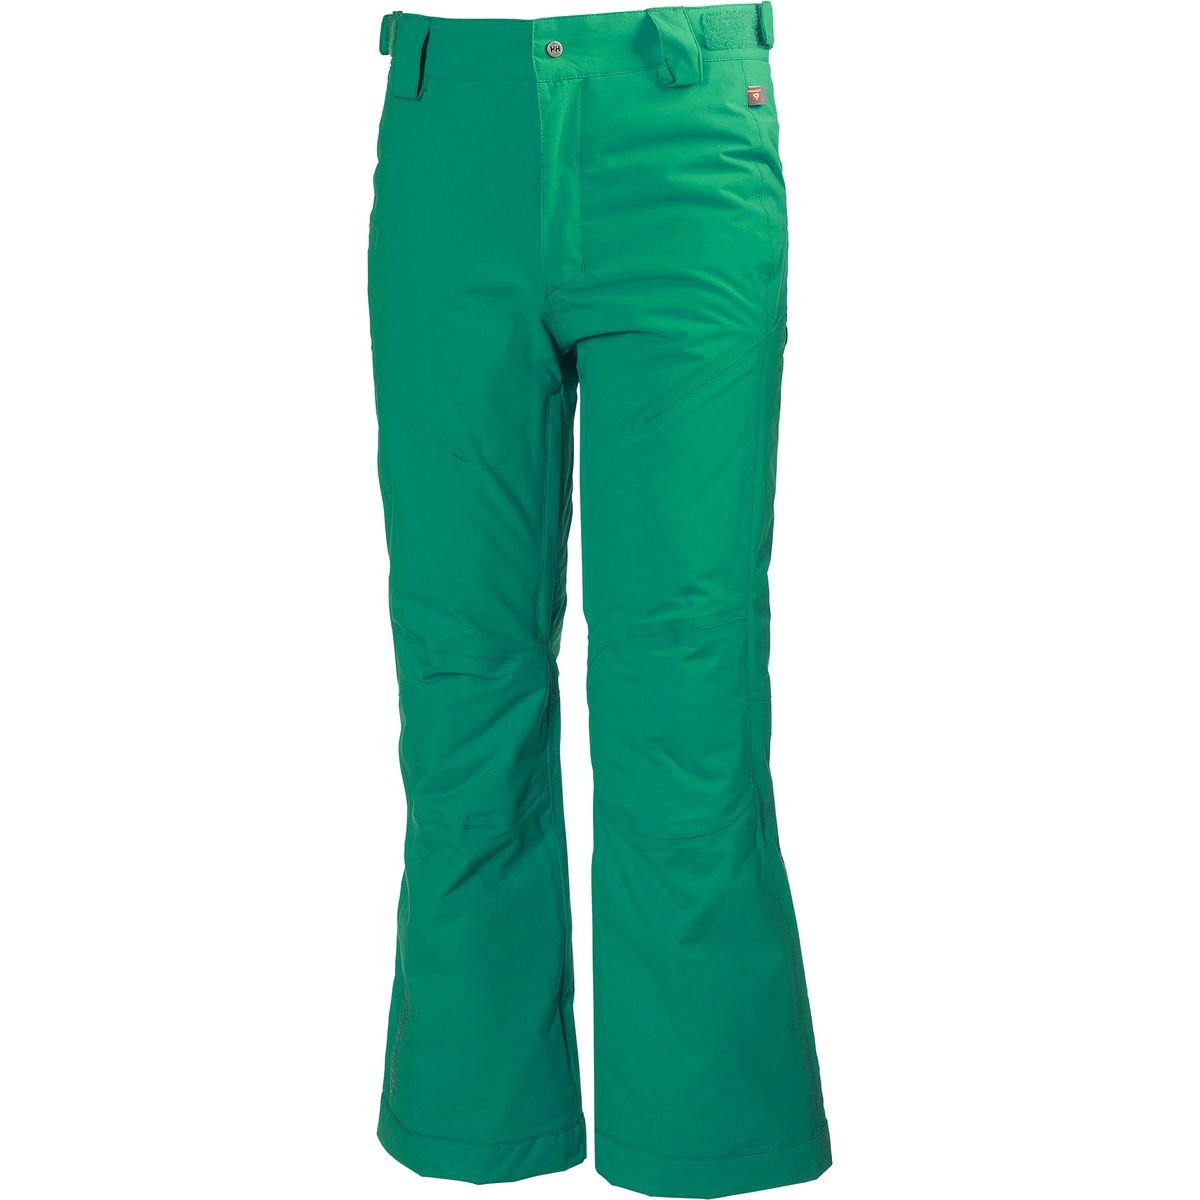 Helly Hansen Junior Kids Legend Insulated Pants, Bright Green, Size 10